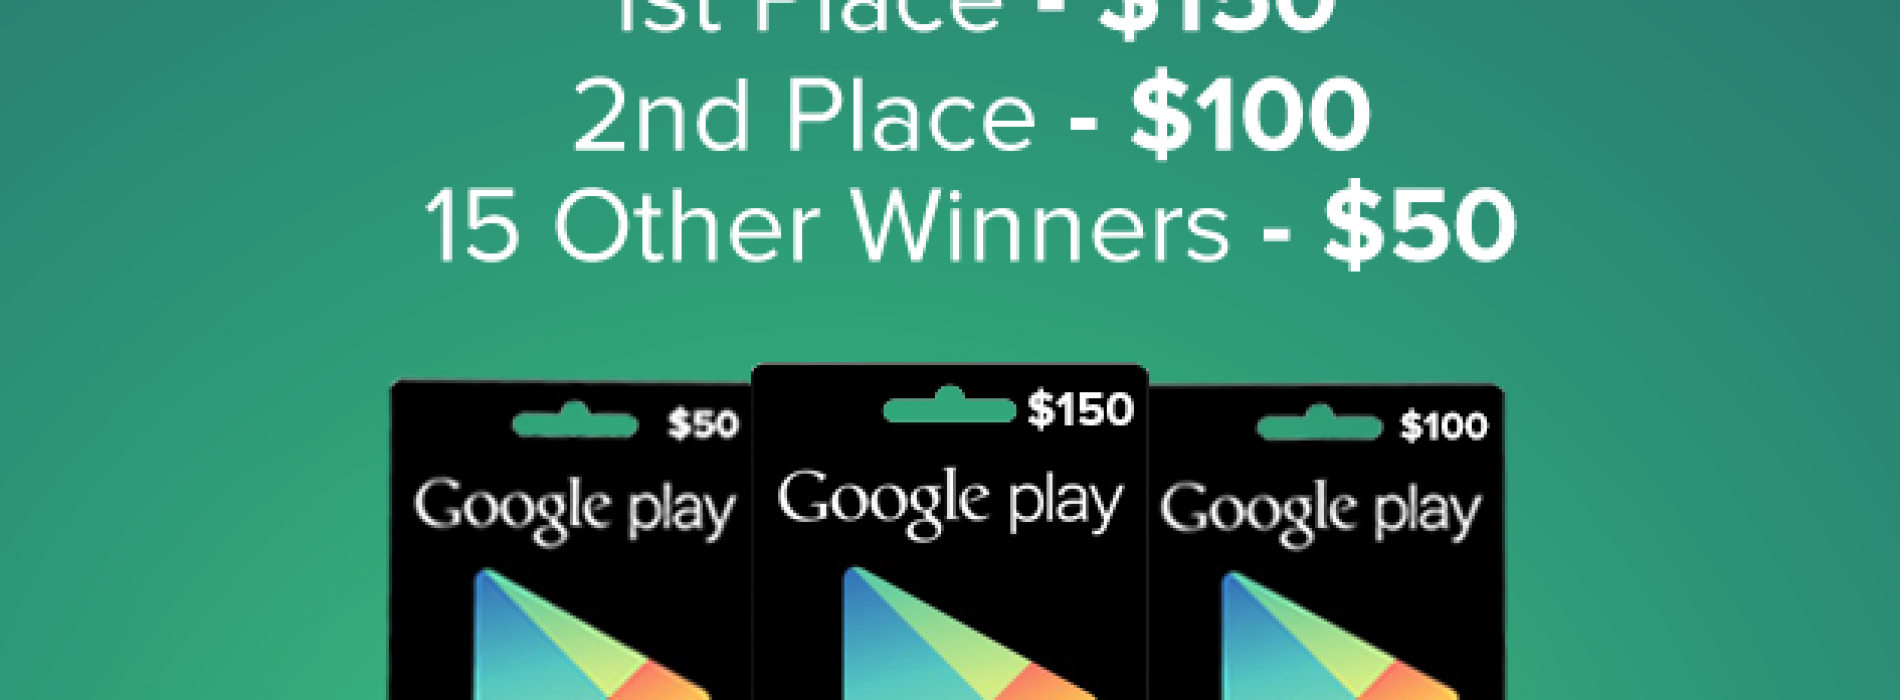 $1,000 Google Play Giveaway [DEALS]